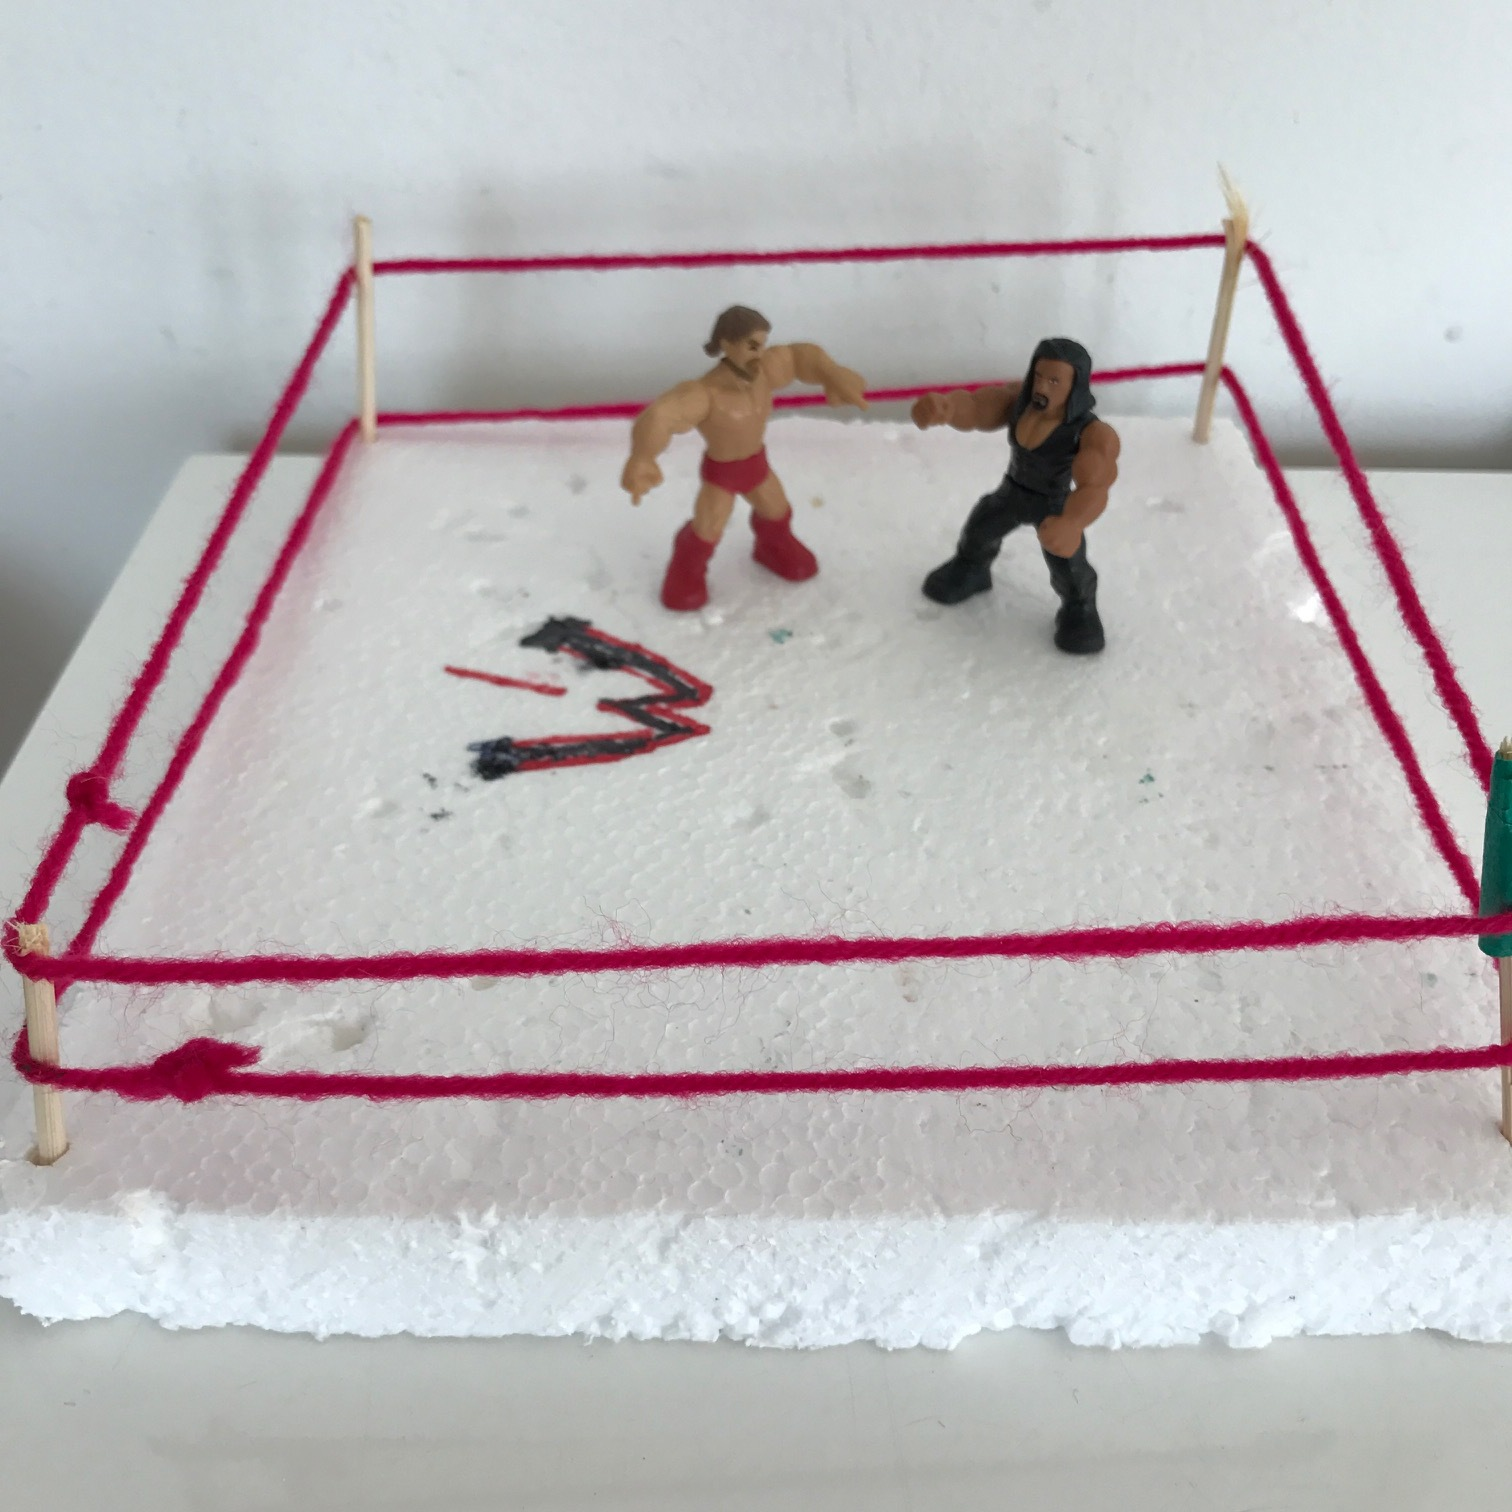 A ring for their wrestlers.